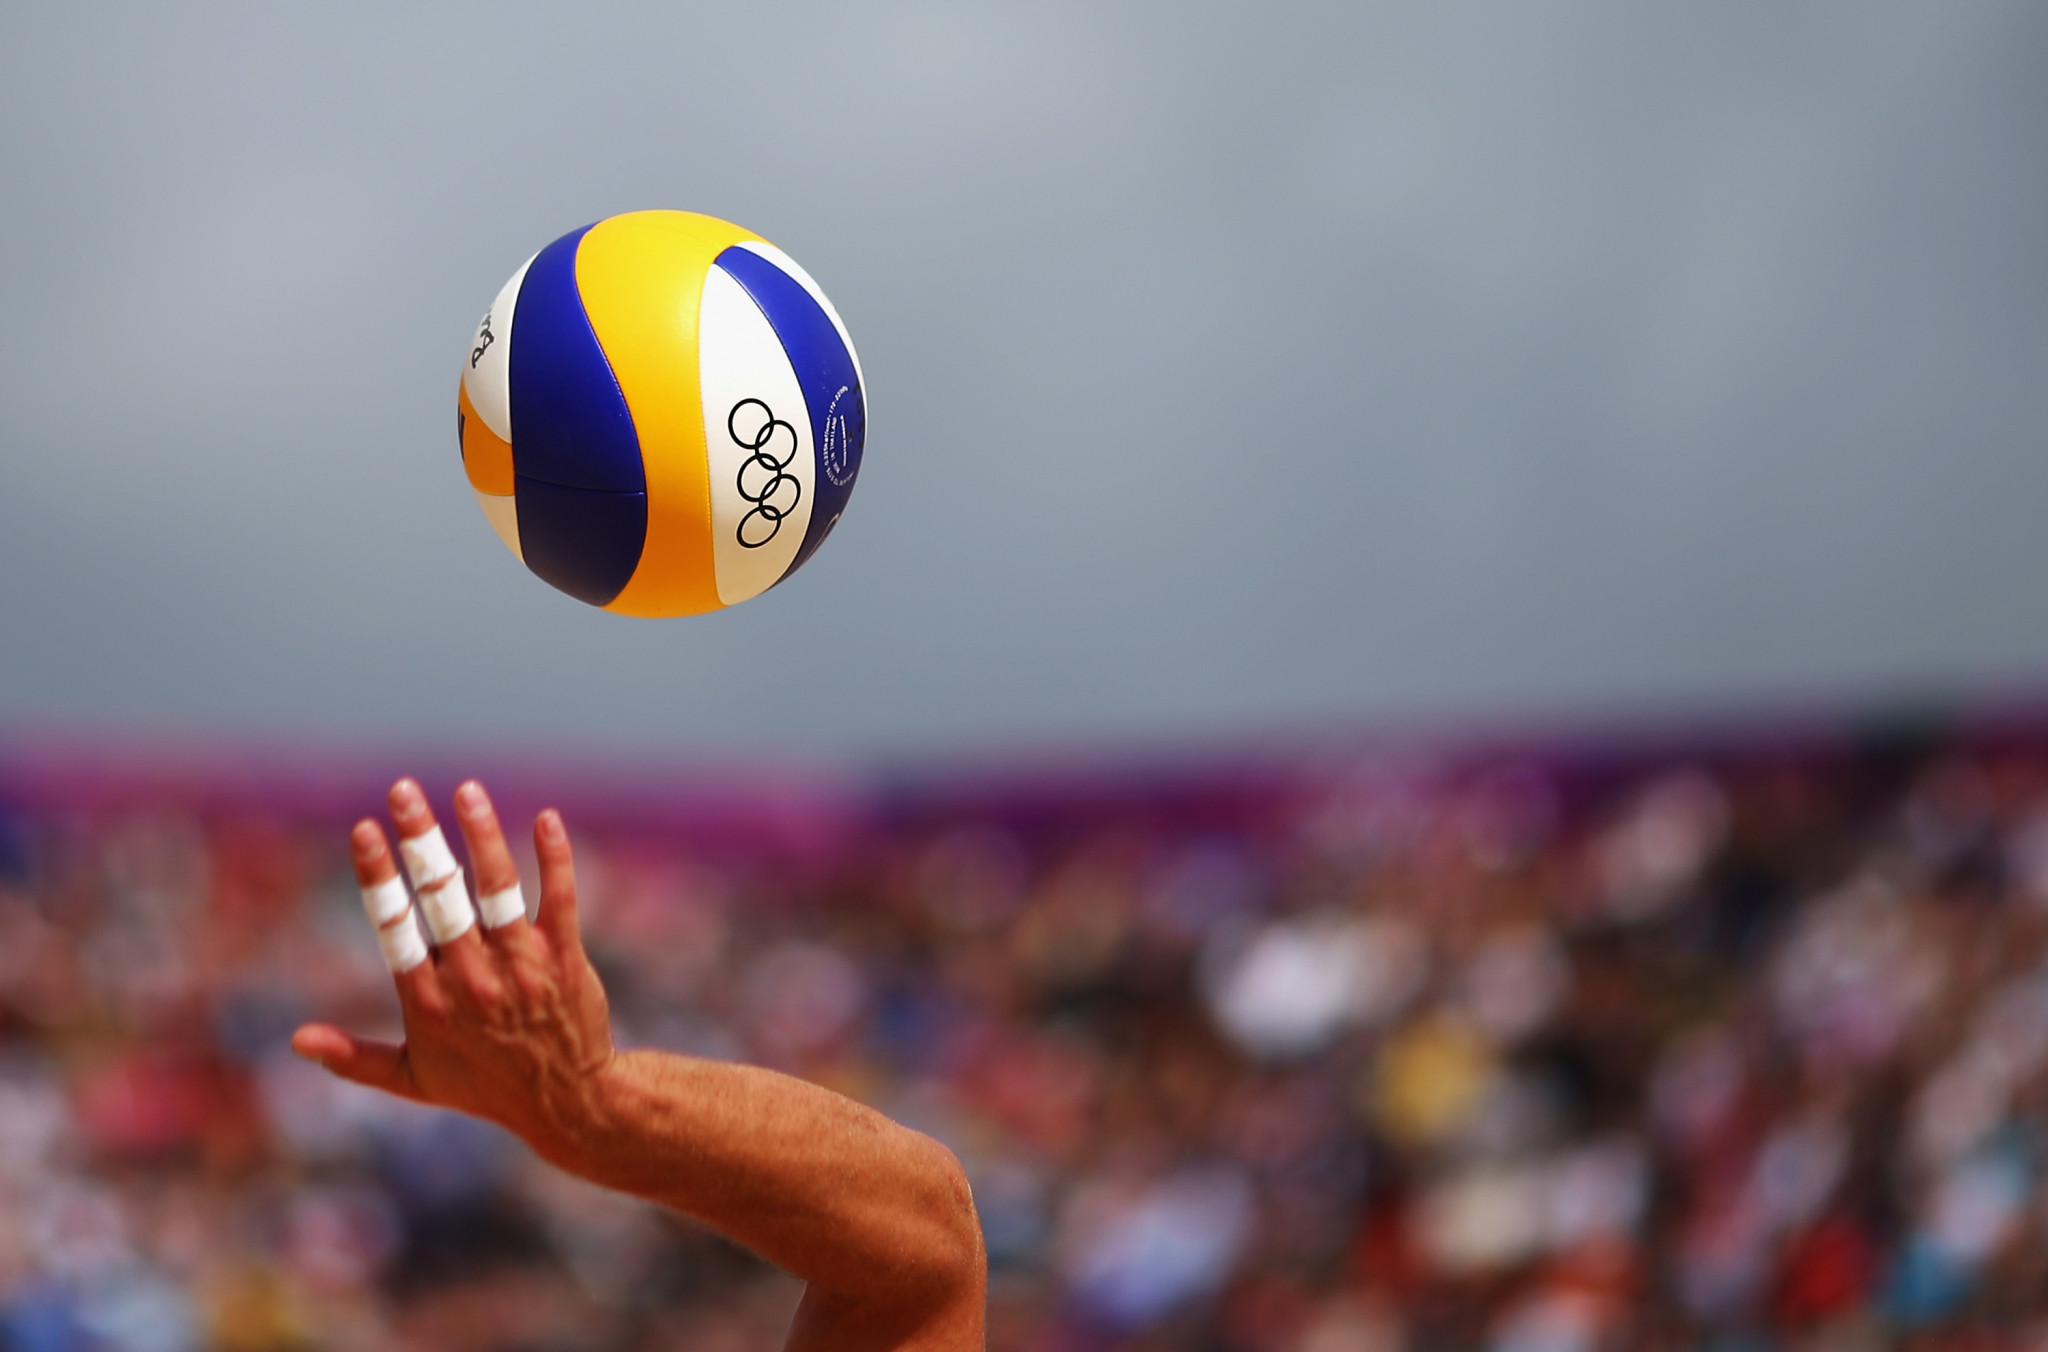 FIVB offers short-term financial assistance through Athletes' Relief Support Fund